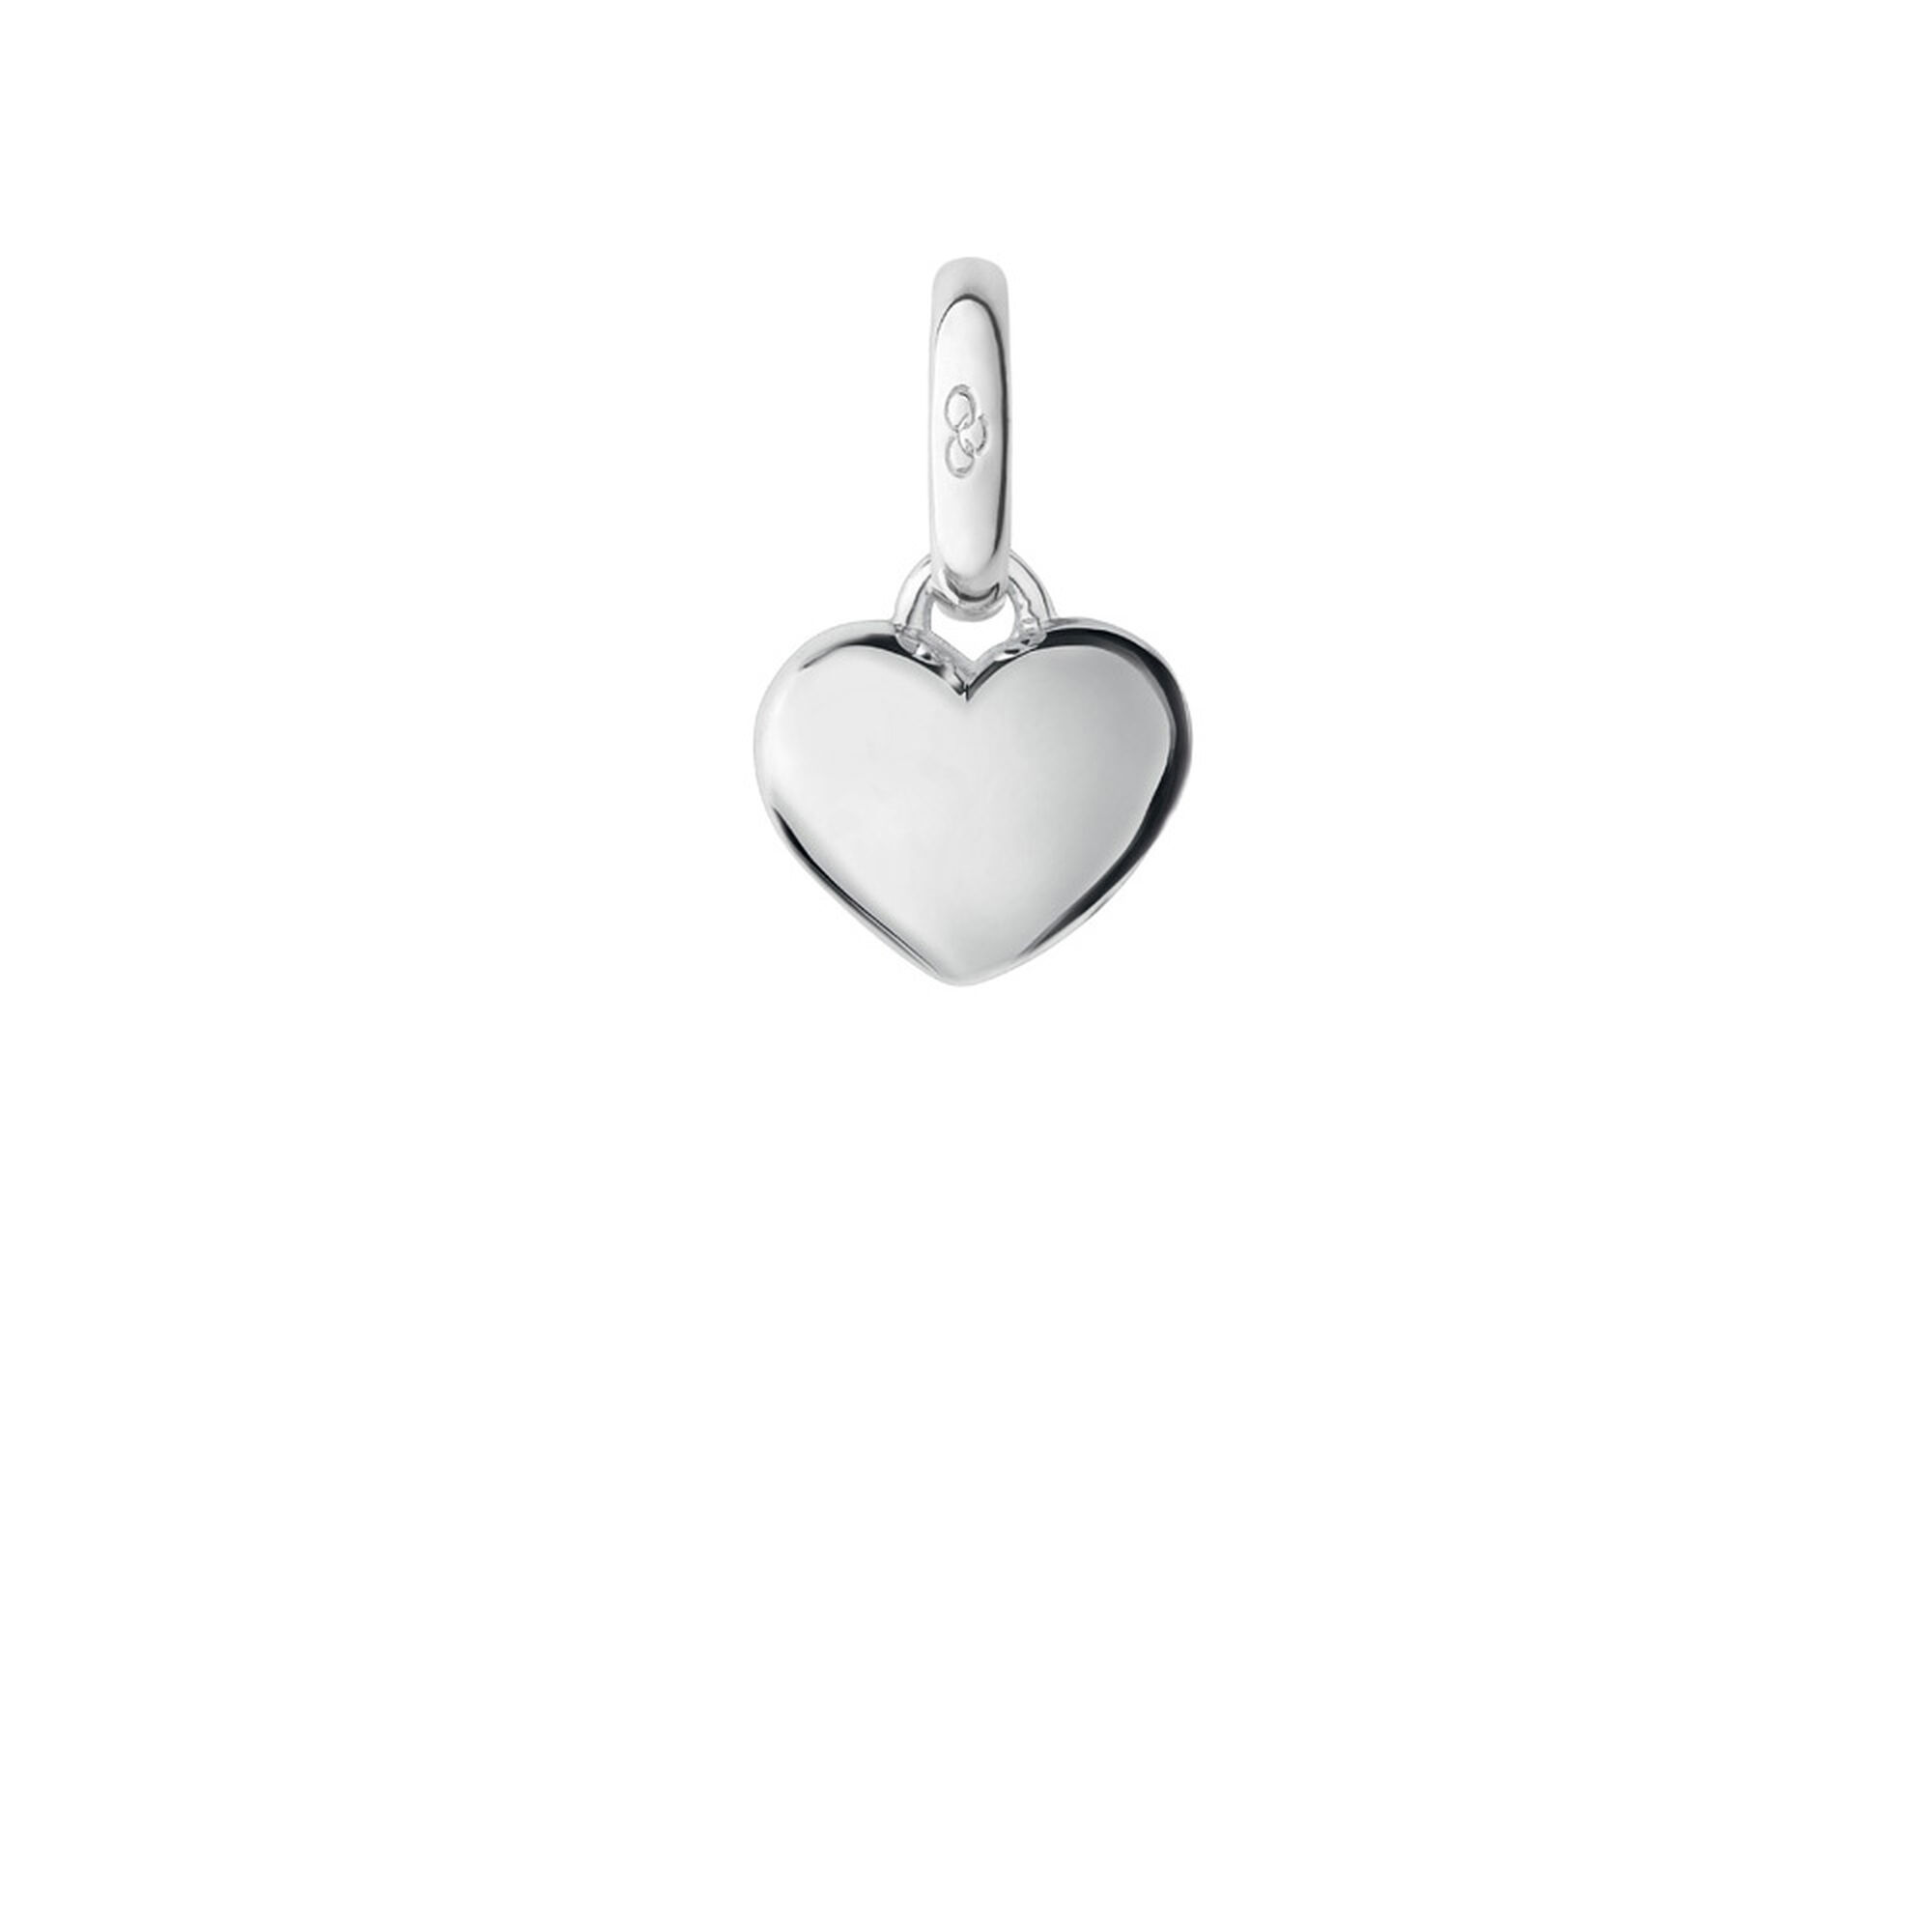 mhd children g silver bk mini initai sterling with cz plated necklace initial heart collections gold n